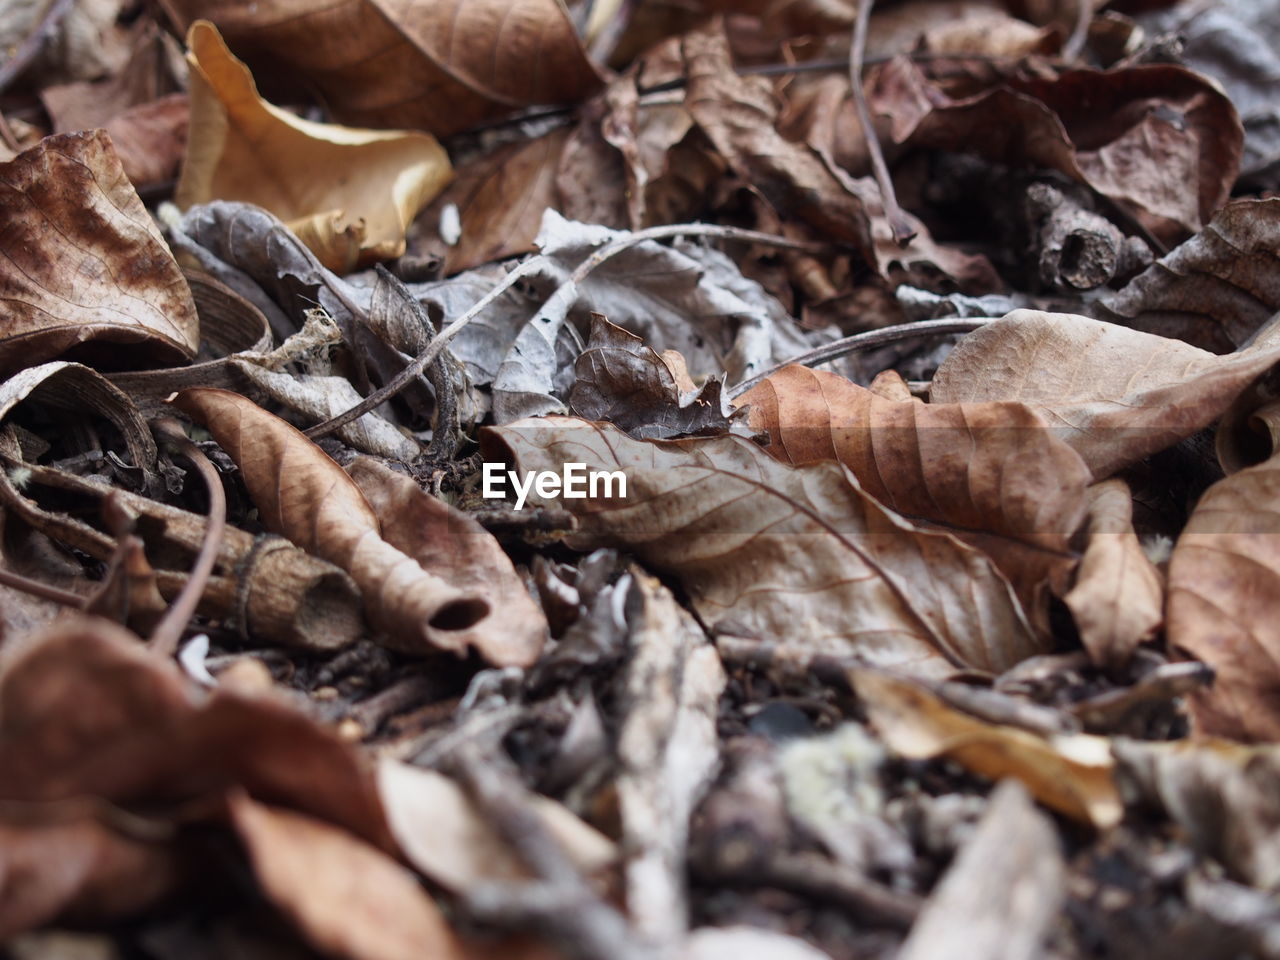 dry, leaf, autumn, change, nature, no people, large group of objects, close-up, dried plant, full frame, backgrounds, day, outdoors, fragility, food